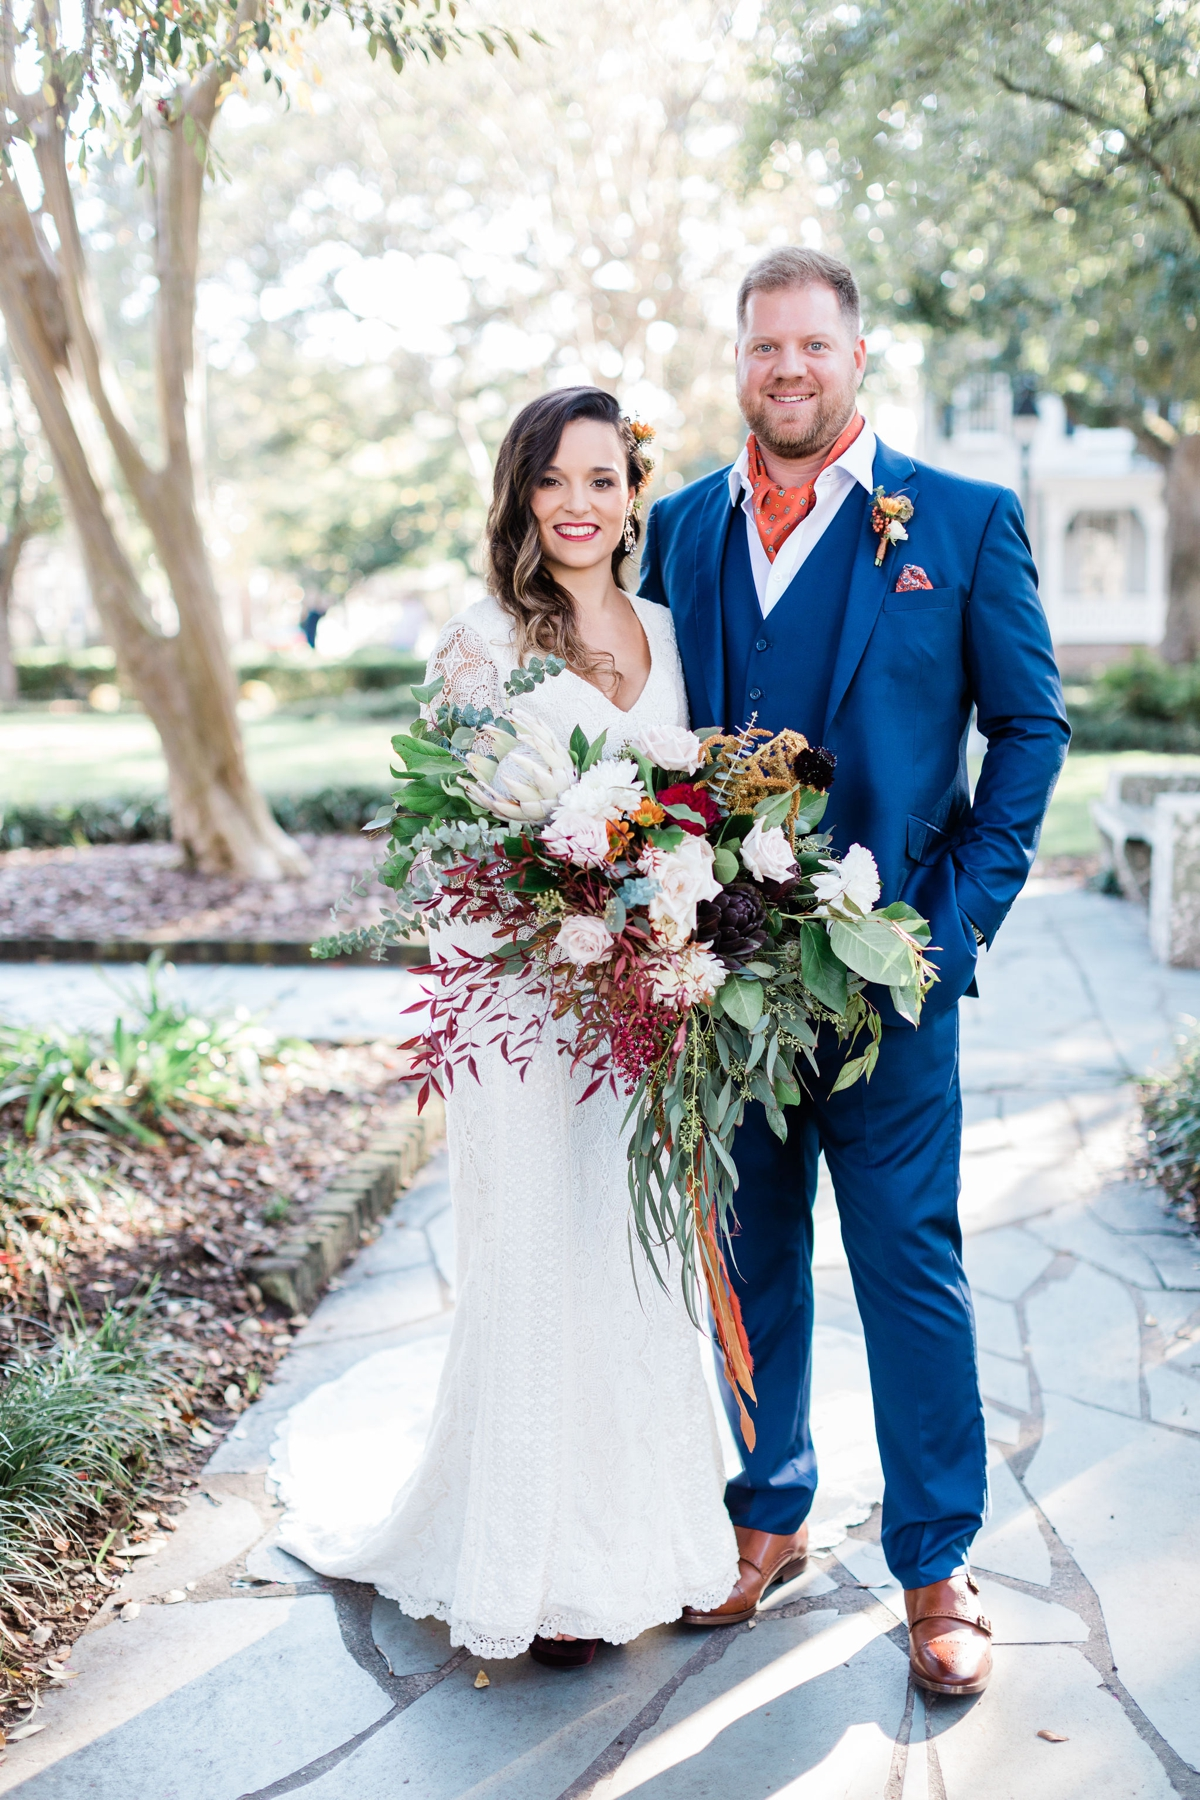 Large burgundy bohemian and natural bouquet by Ivory And Beau - Apt B Photography - Savannah wedding photographer